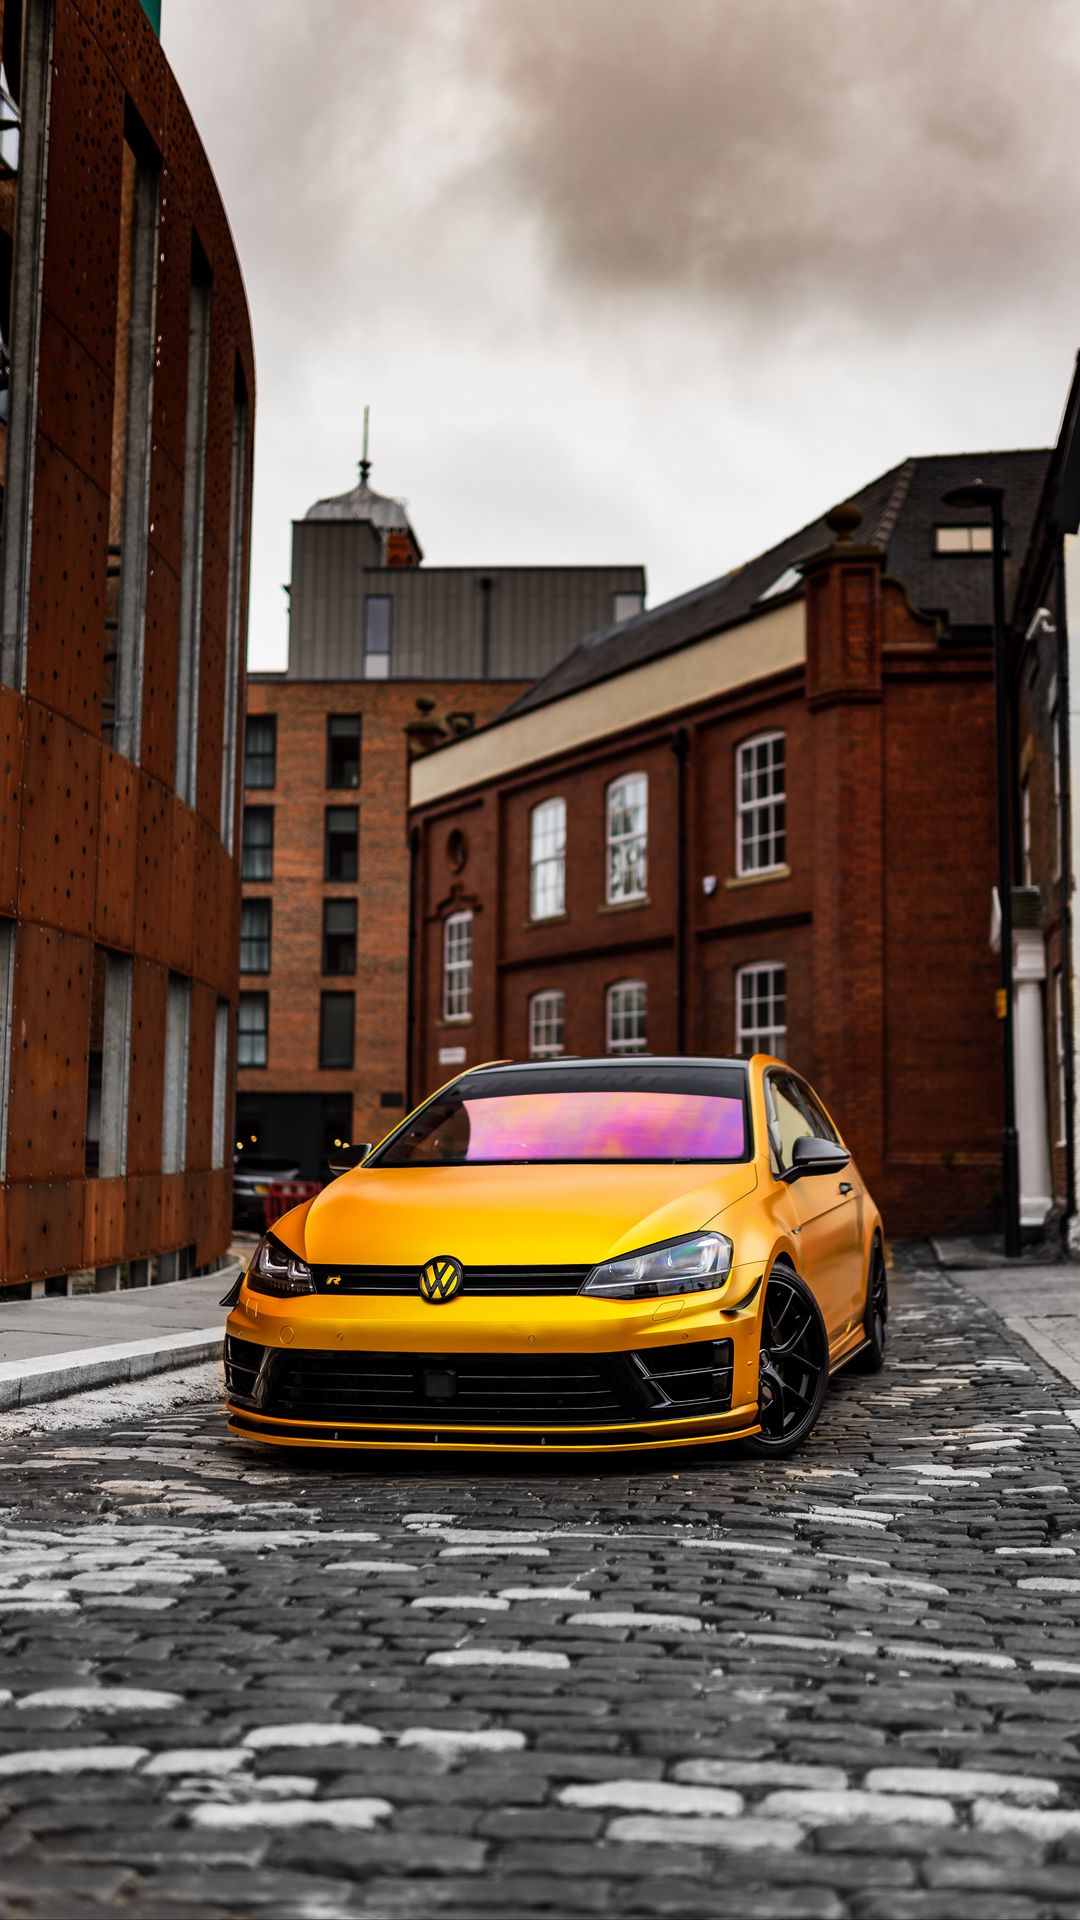 VW Golf Modified Car Ultra HD Wallpapers Download